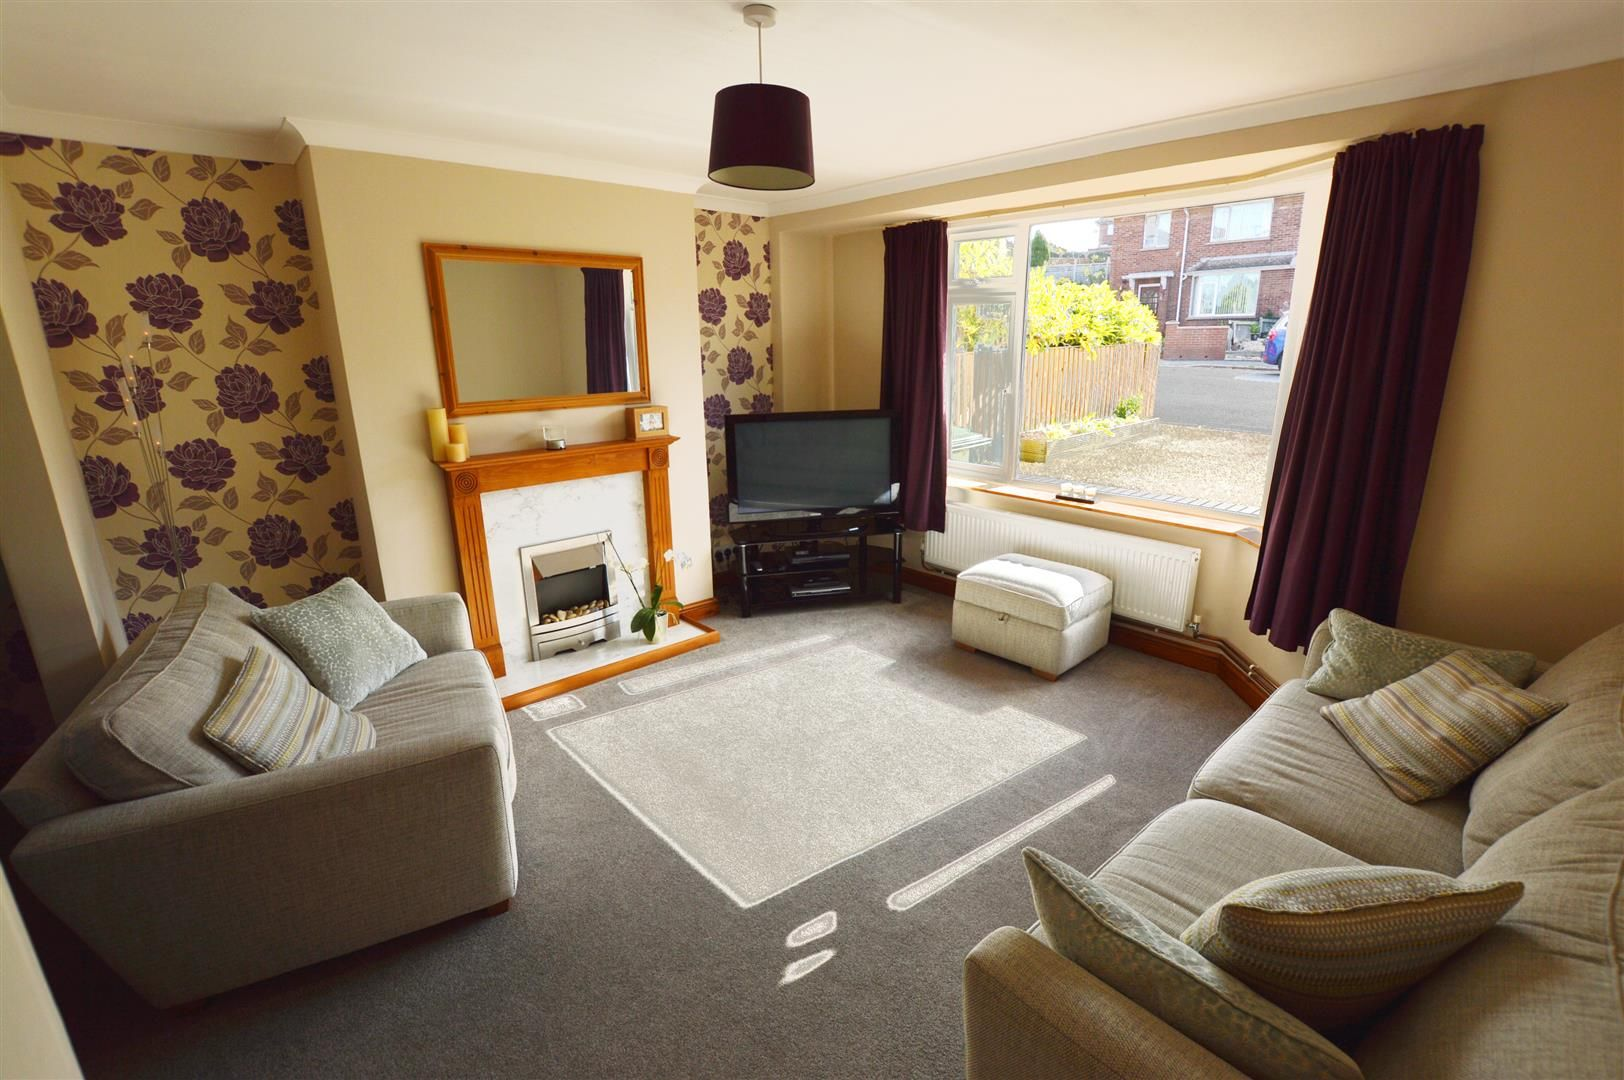 4 bed semi-detached for sale in Hereford 2